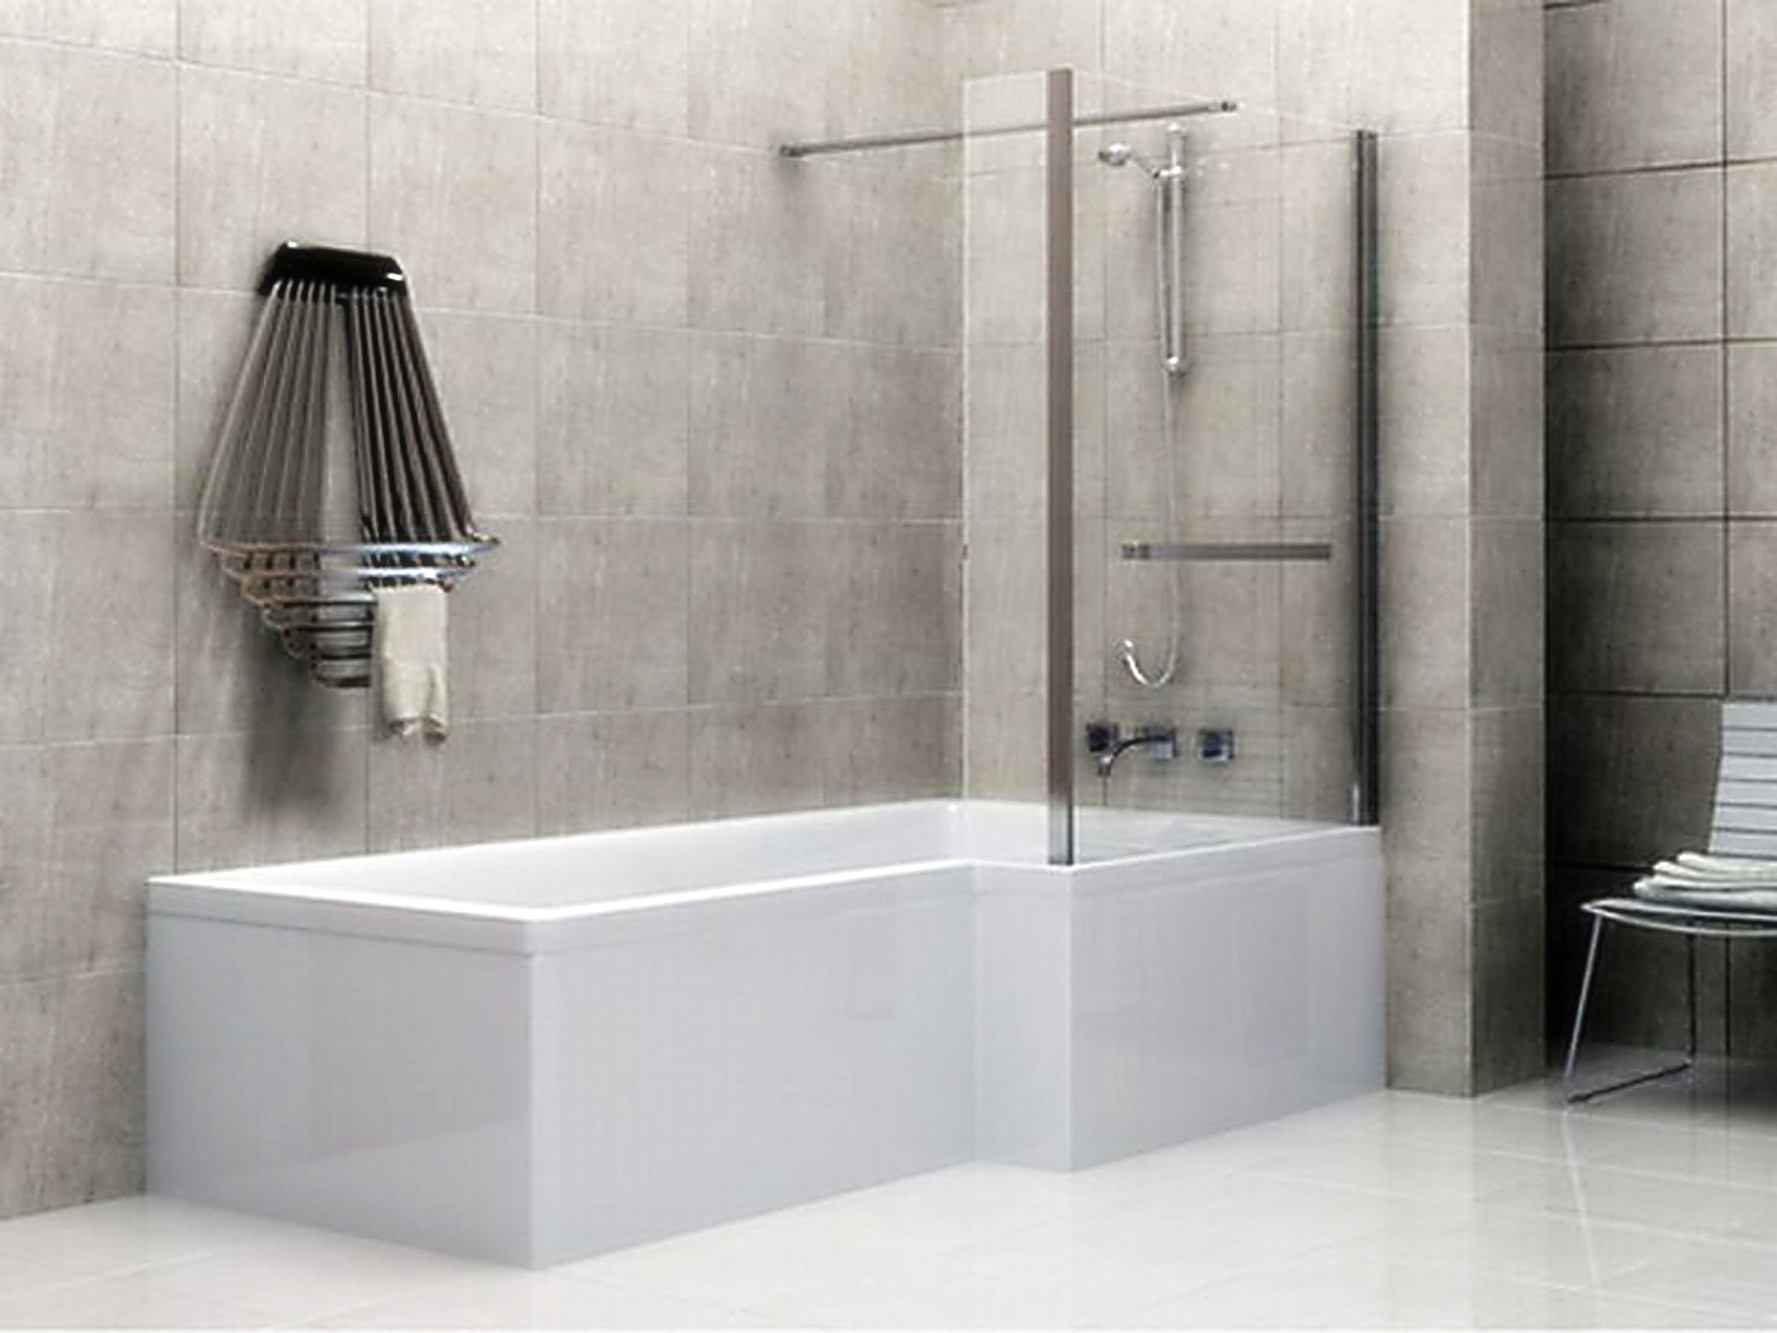 remodel works bath & kitchen aid standing mixer 30 beautiful pictures and ideas custom bathroom tile photos